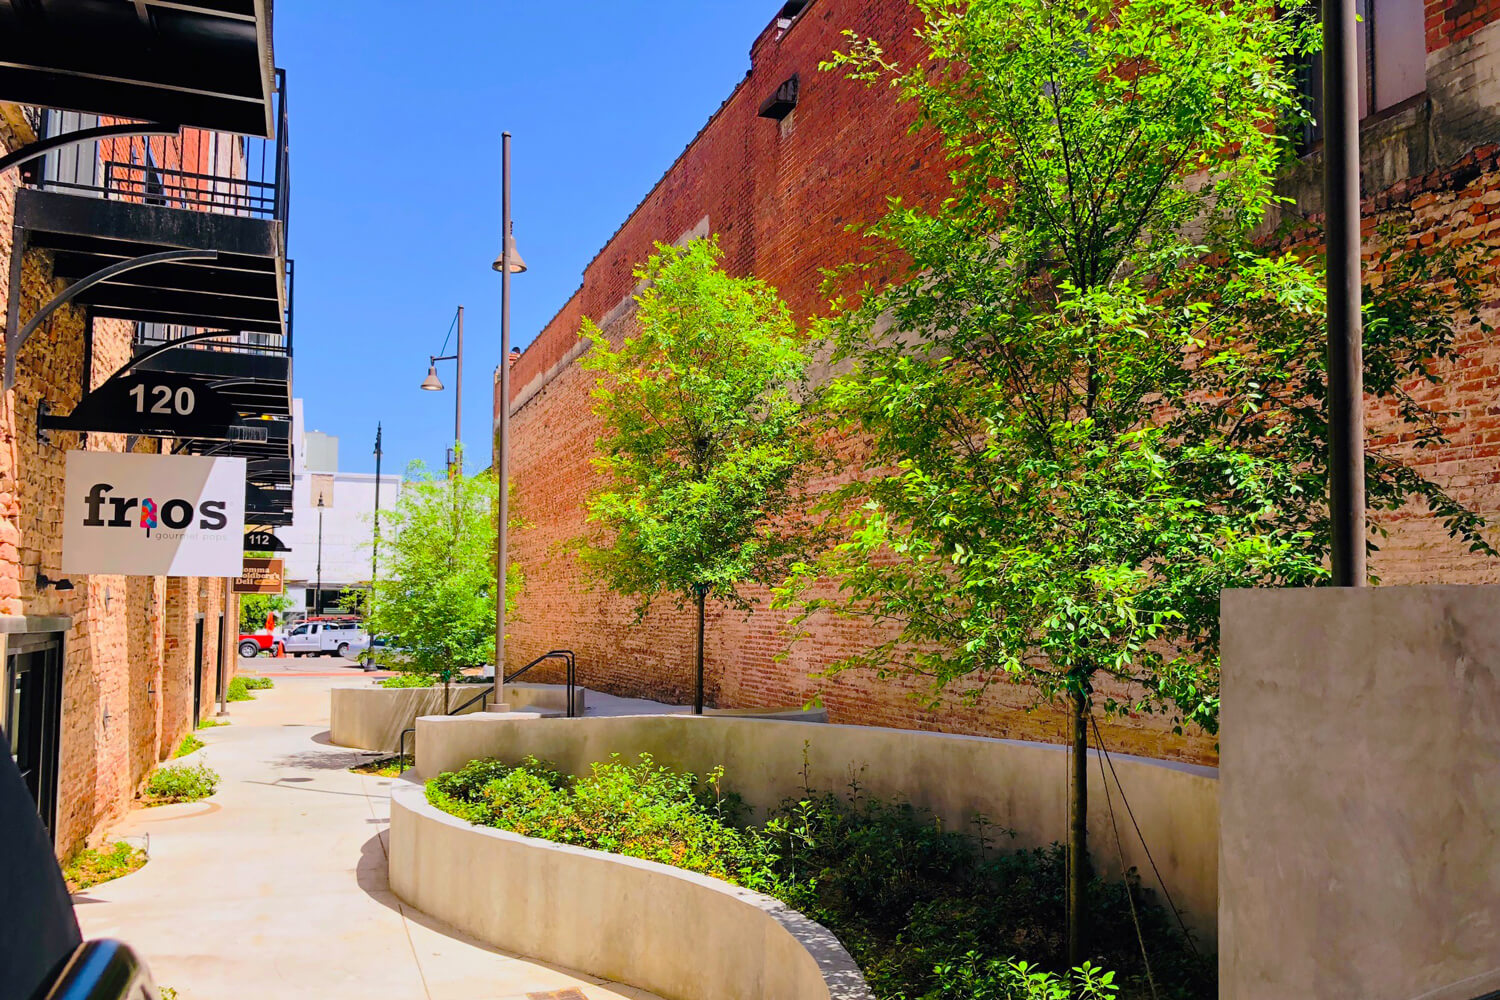 Dexter Alley Looking Towards Dexter Ave - Designed by Foshee Architecture